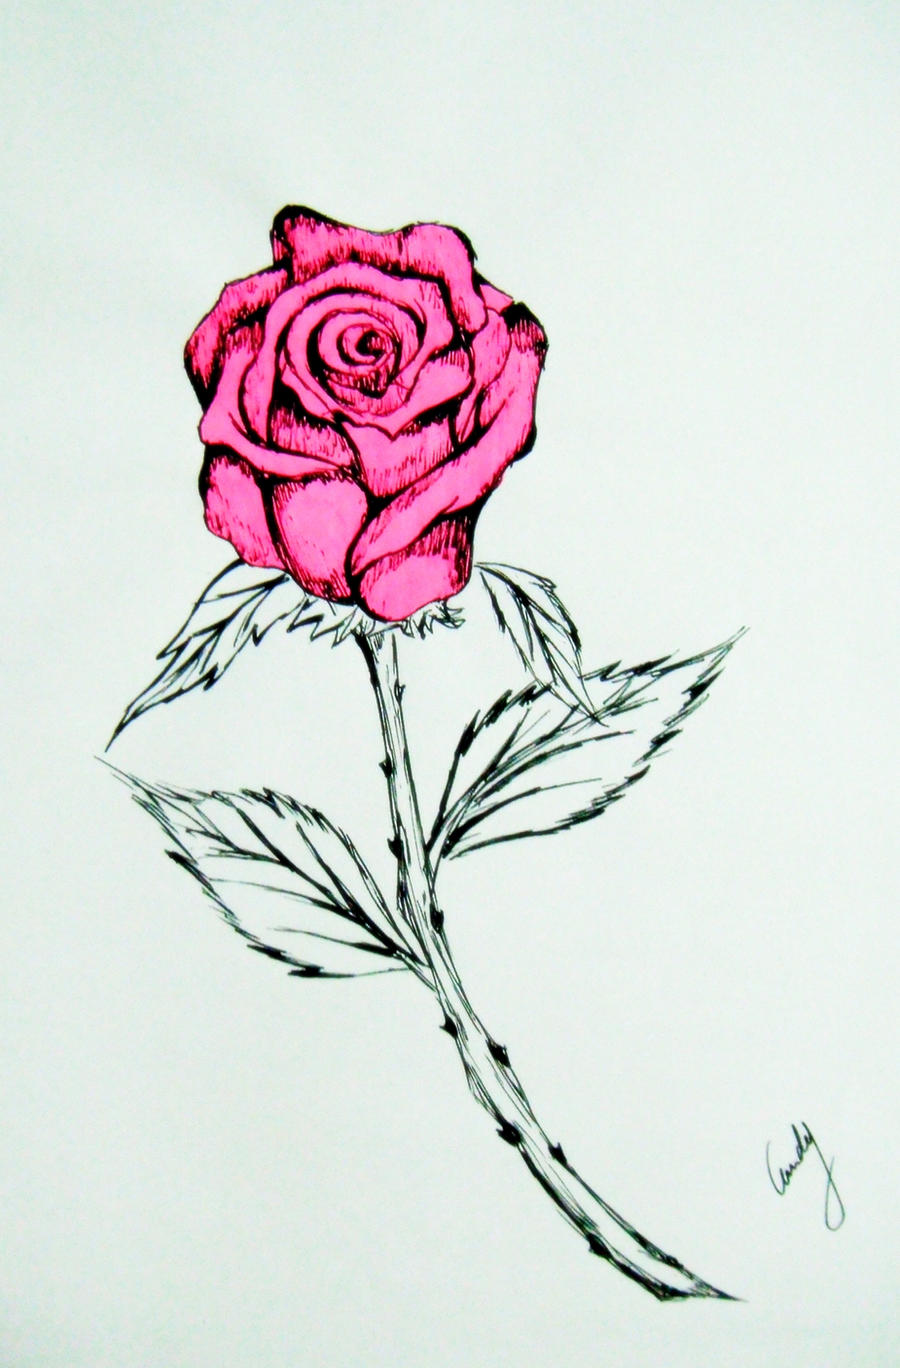 pink rose drawing by andy023 on DeviantArt